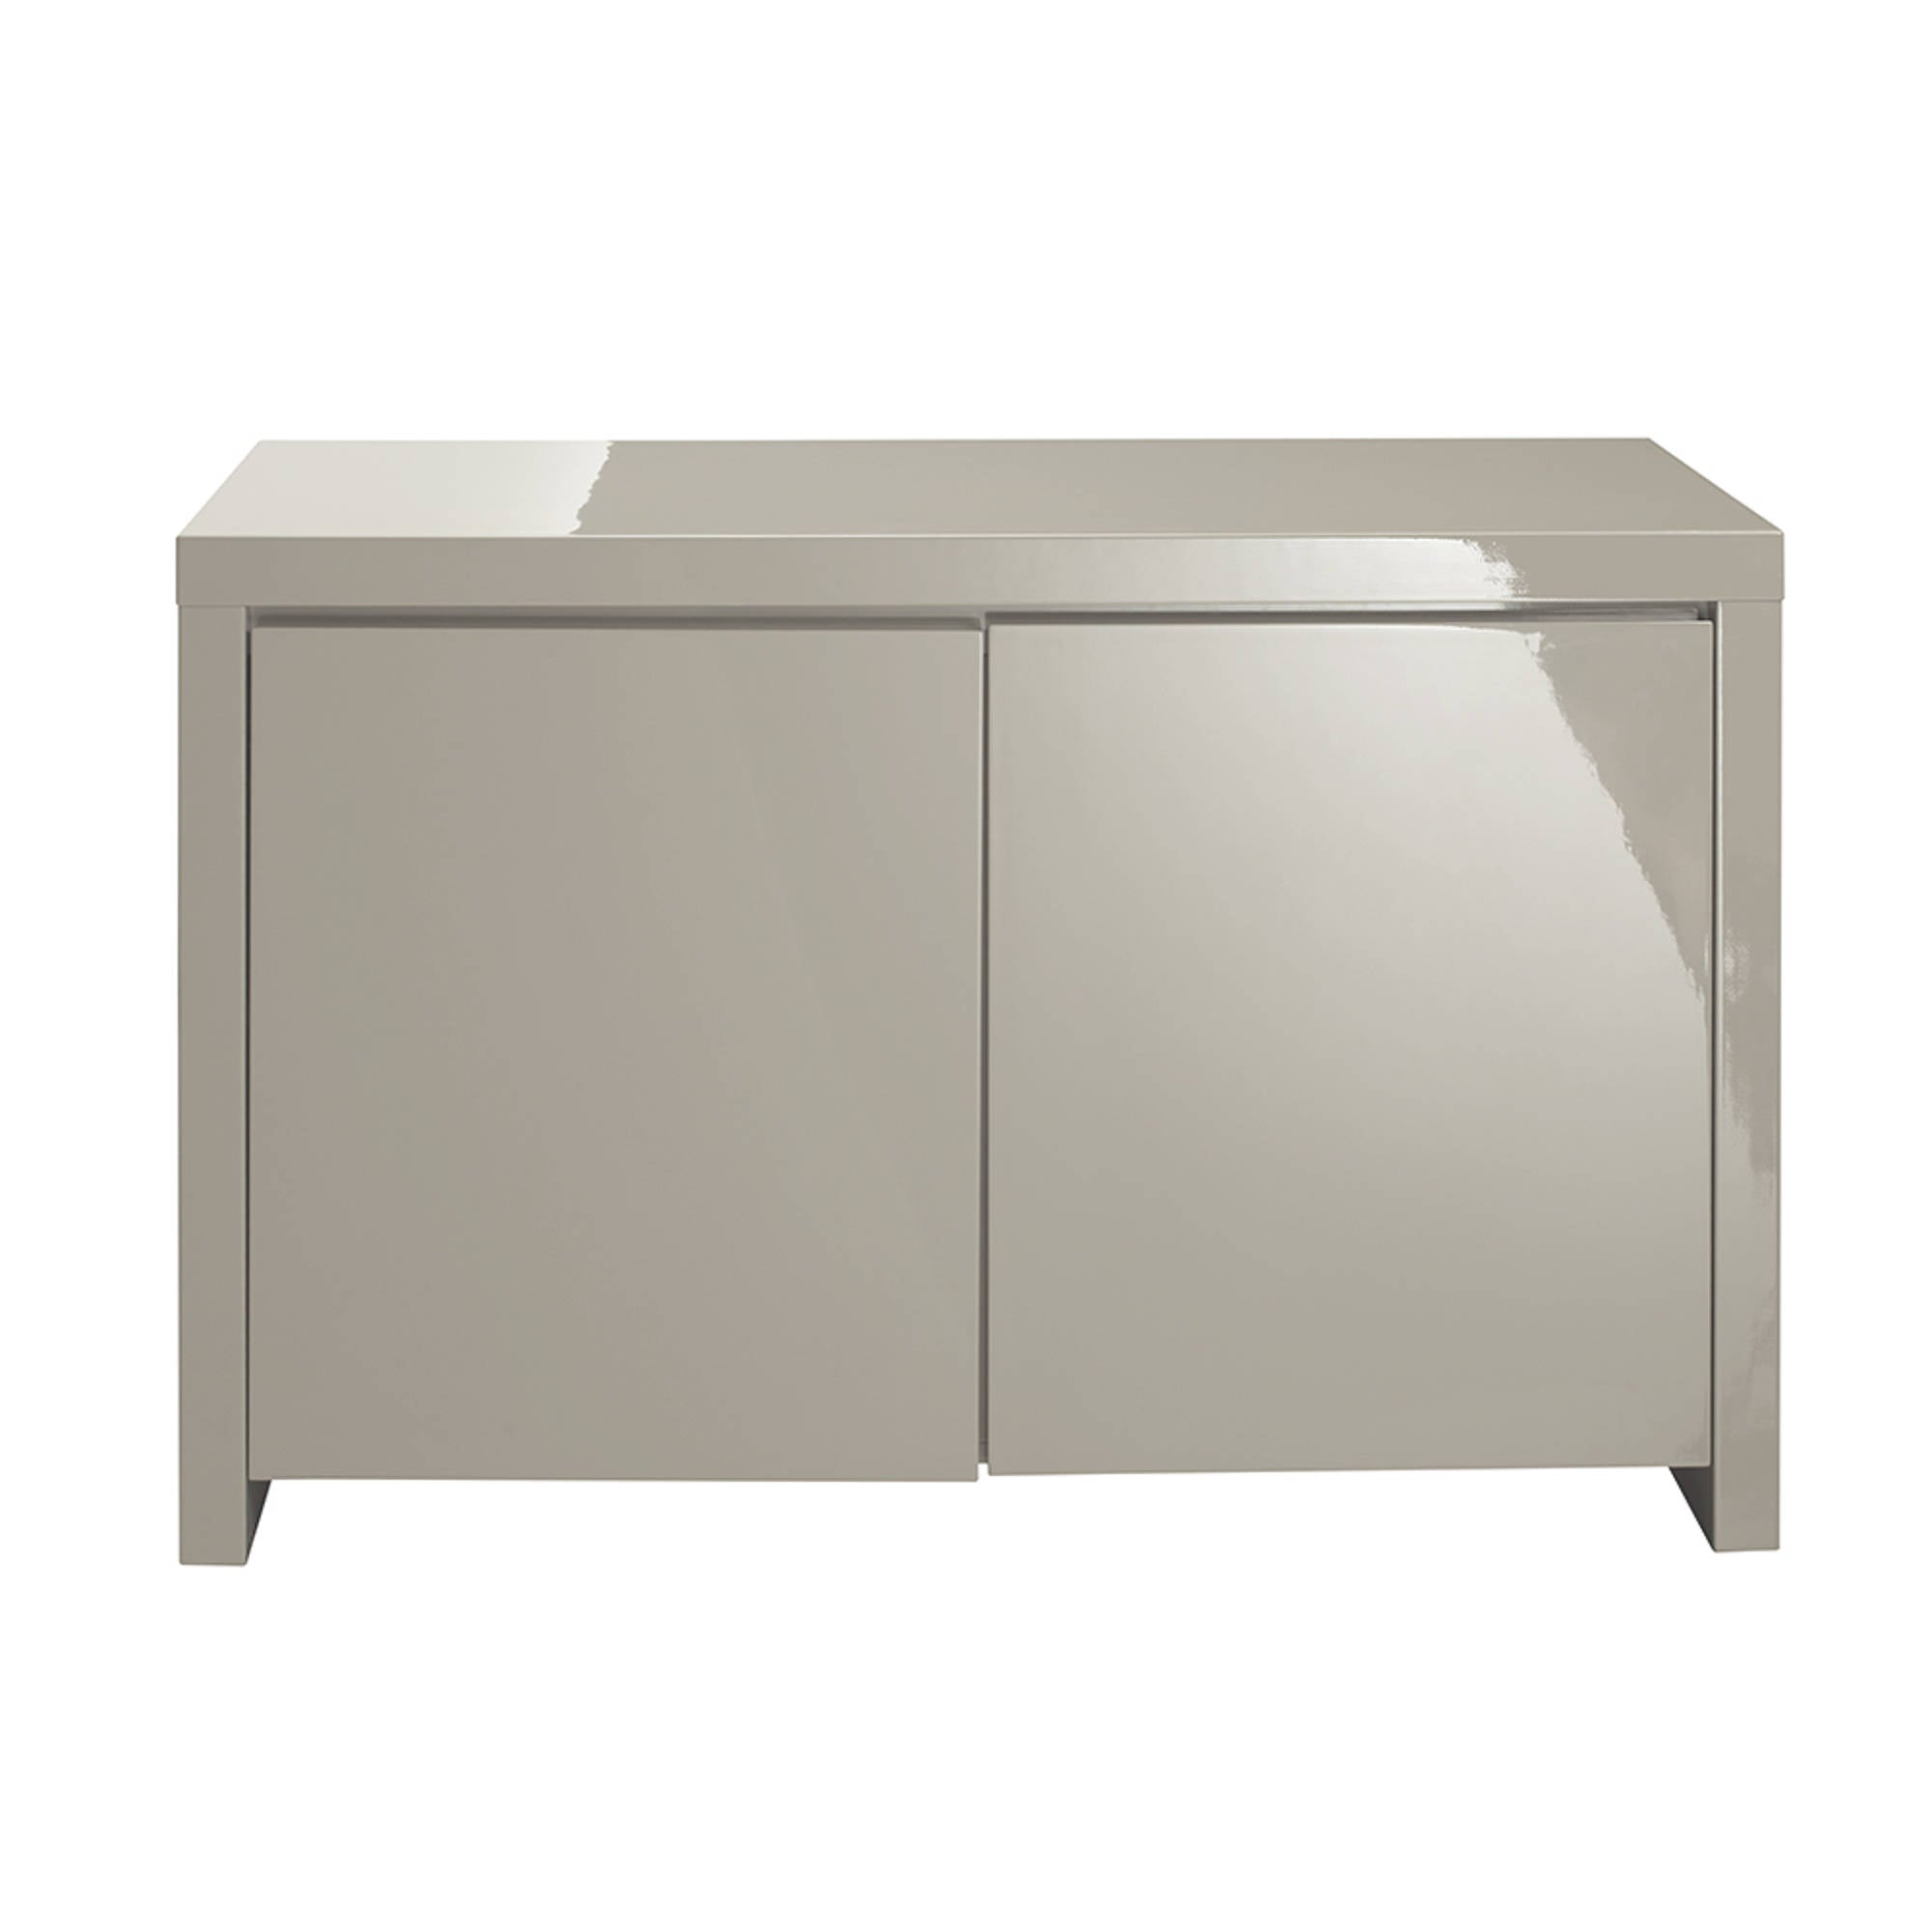 Sterling Sideboard in Stone - Ezzo